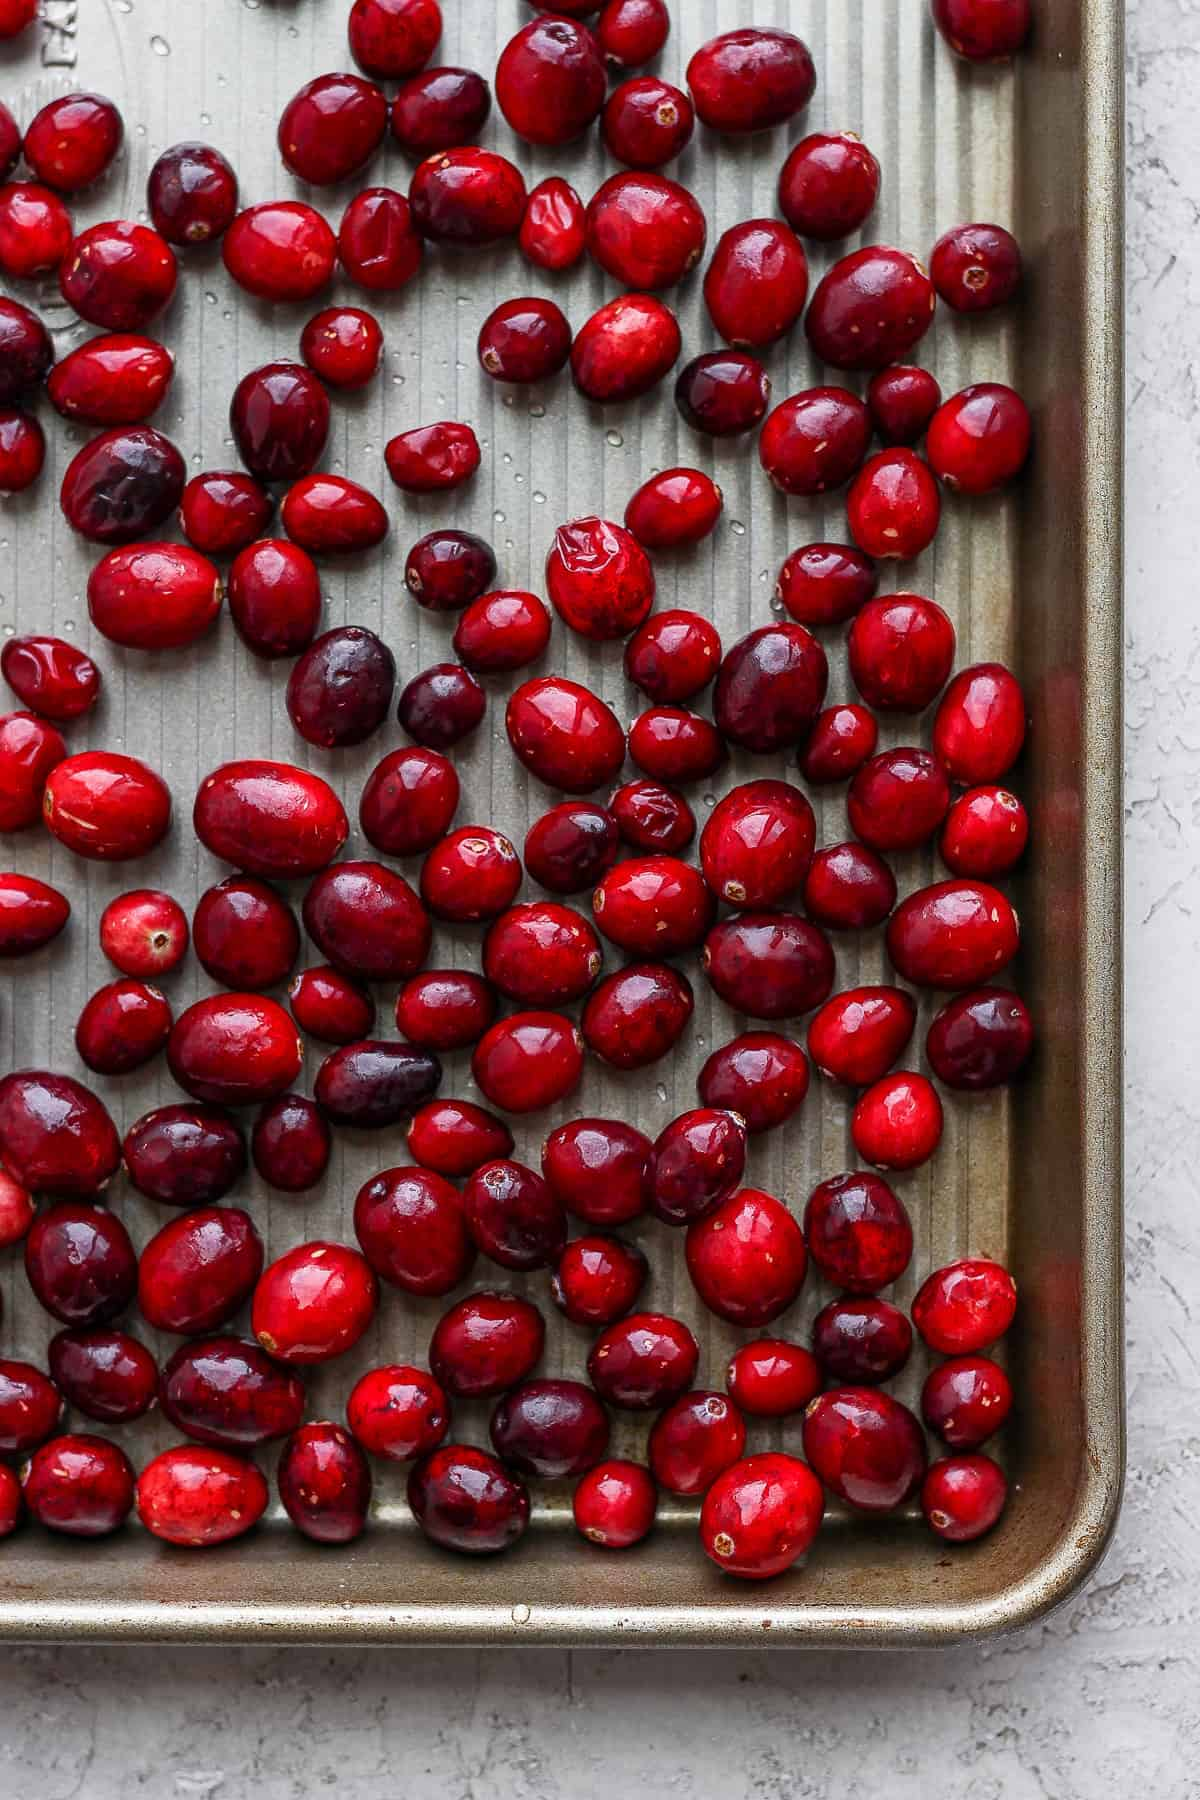 Close up shot of the cranberries frozen on a baking tray